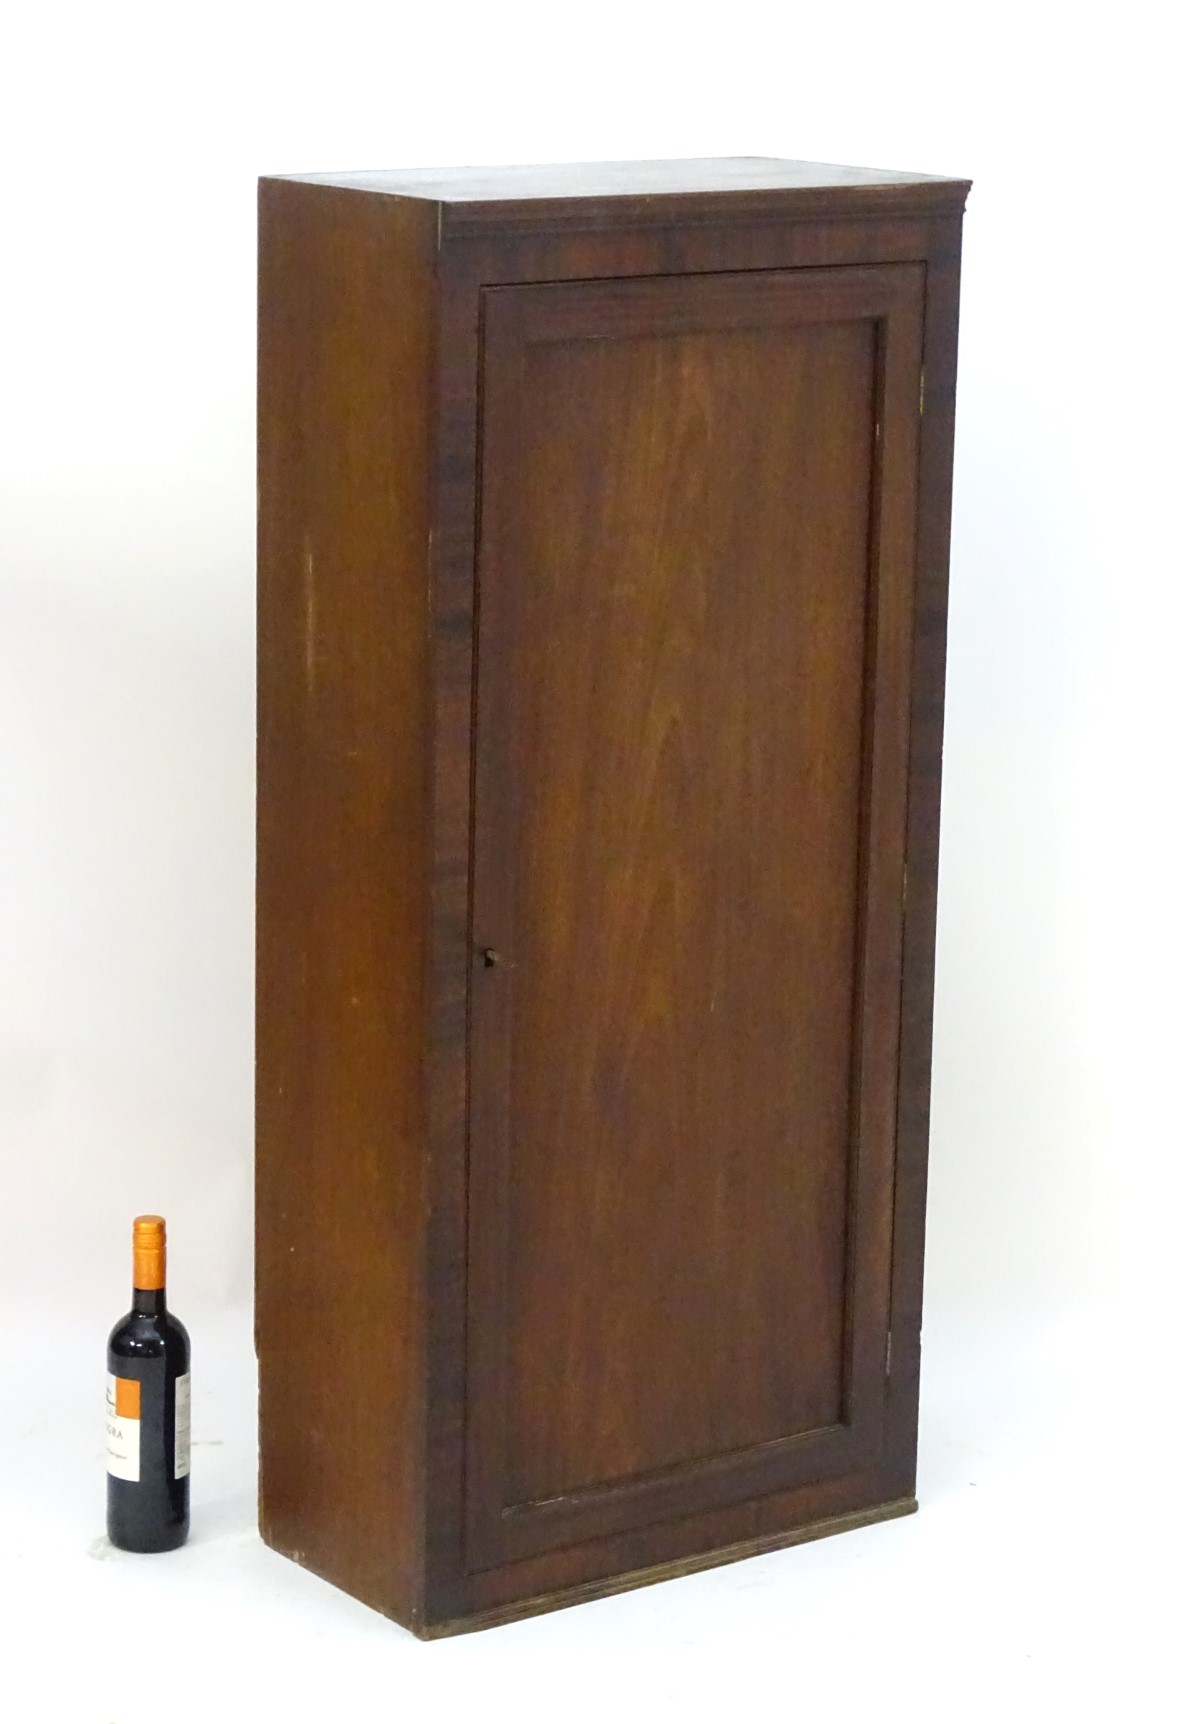 Lot 846 - An early 20thC mahogany cupboard with a single panelled door opening to reveal fitted shelves